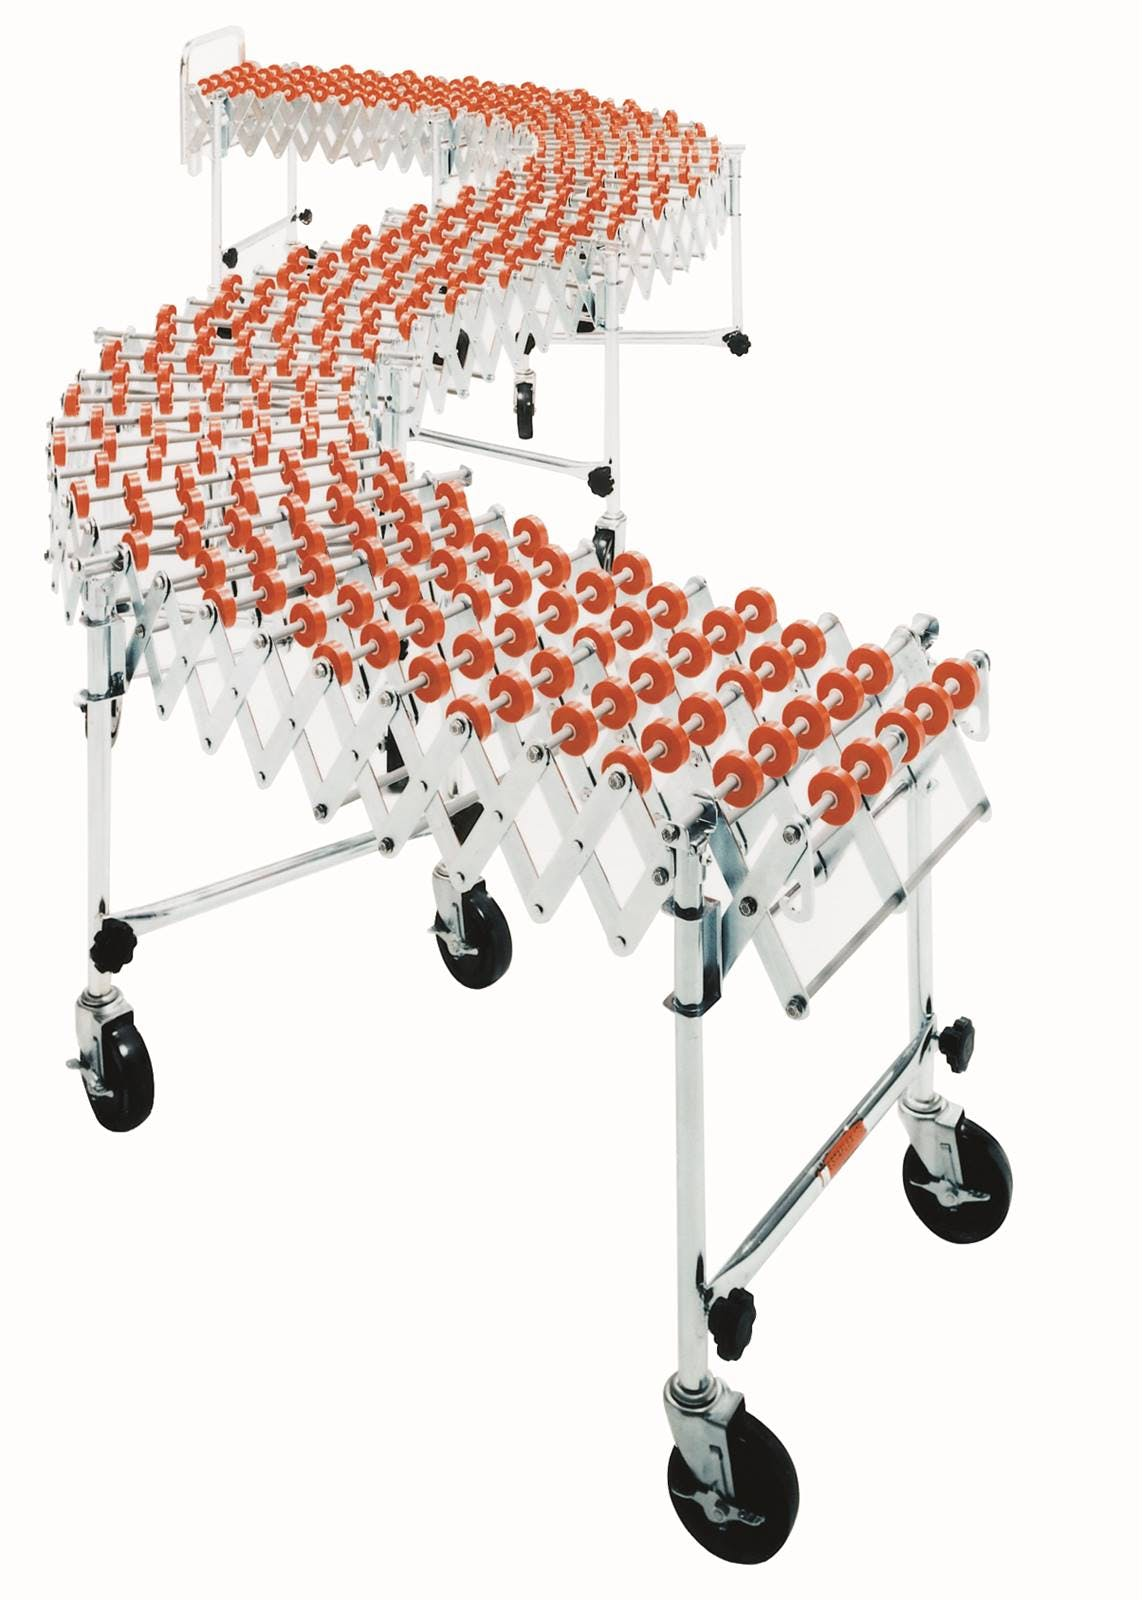 HEAVY DUTY ACCORDIAN WHEEL CONVEYOR H424-60P Conveyor sold by Janeice Products Co Inc.